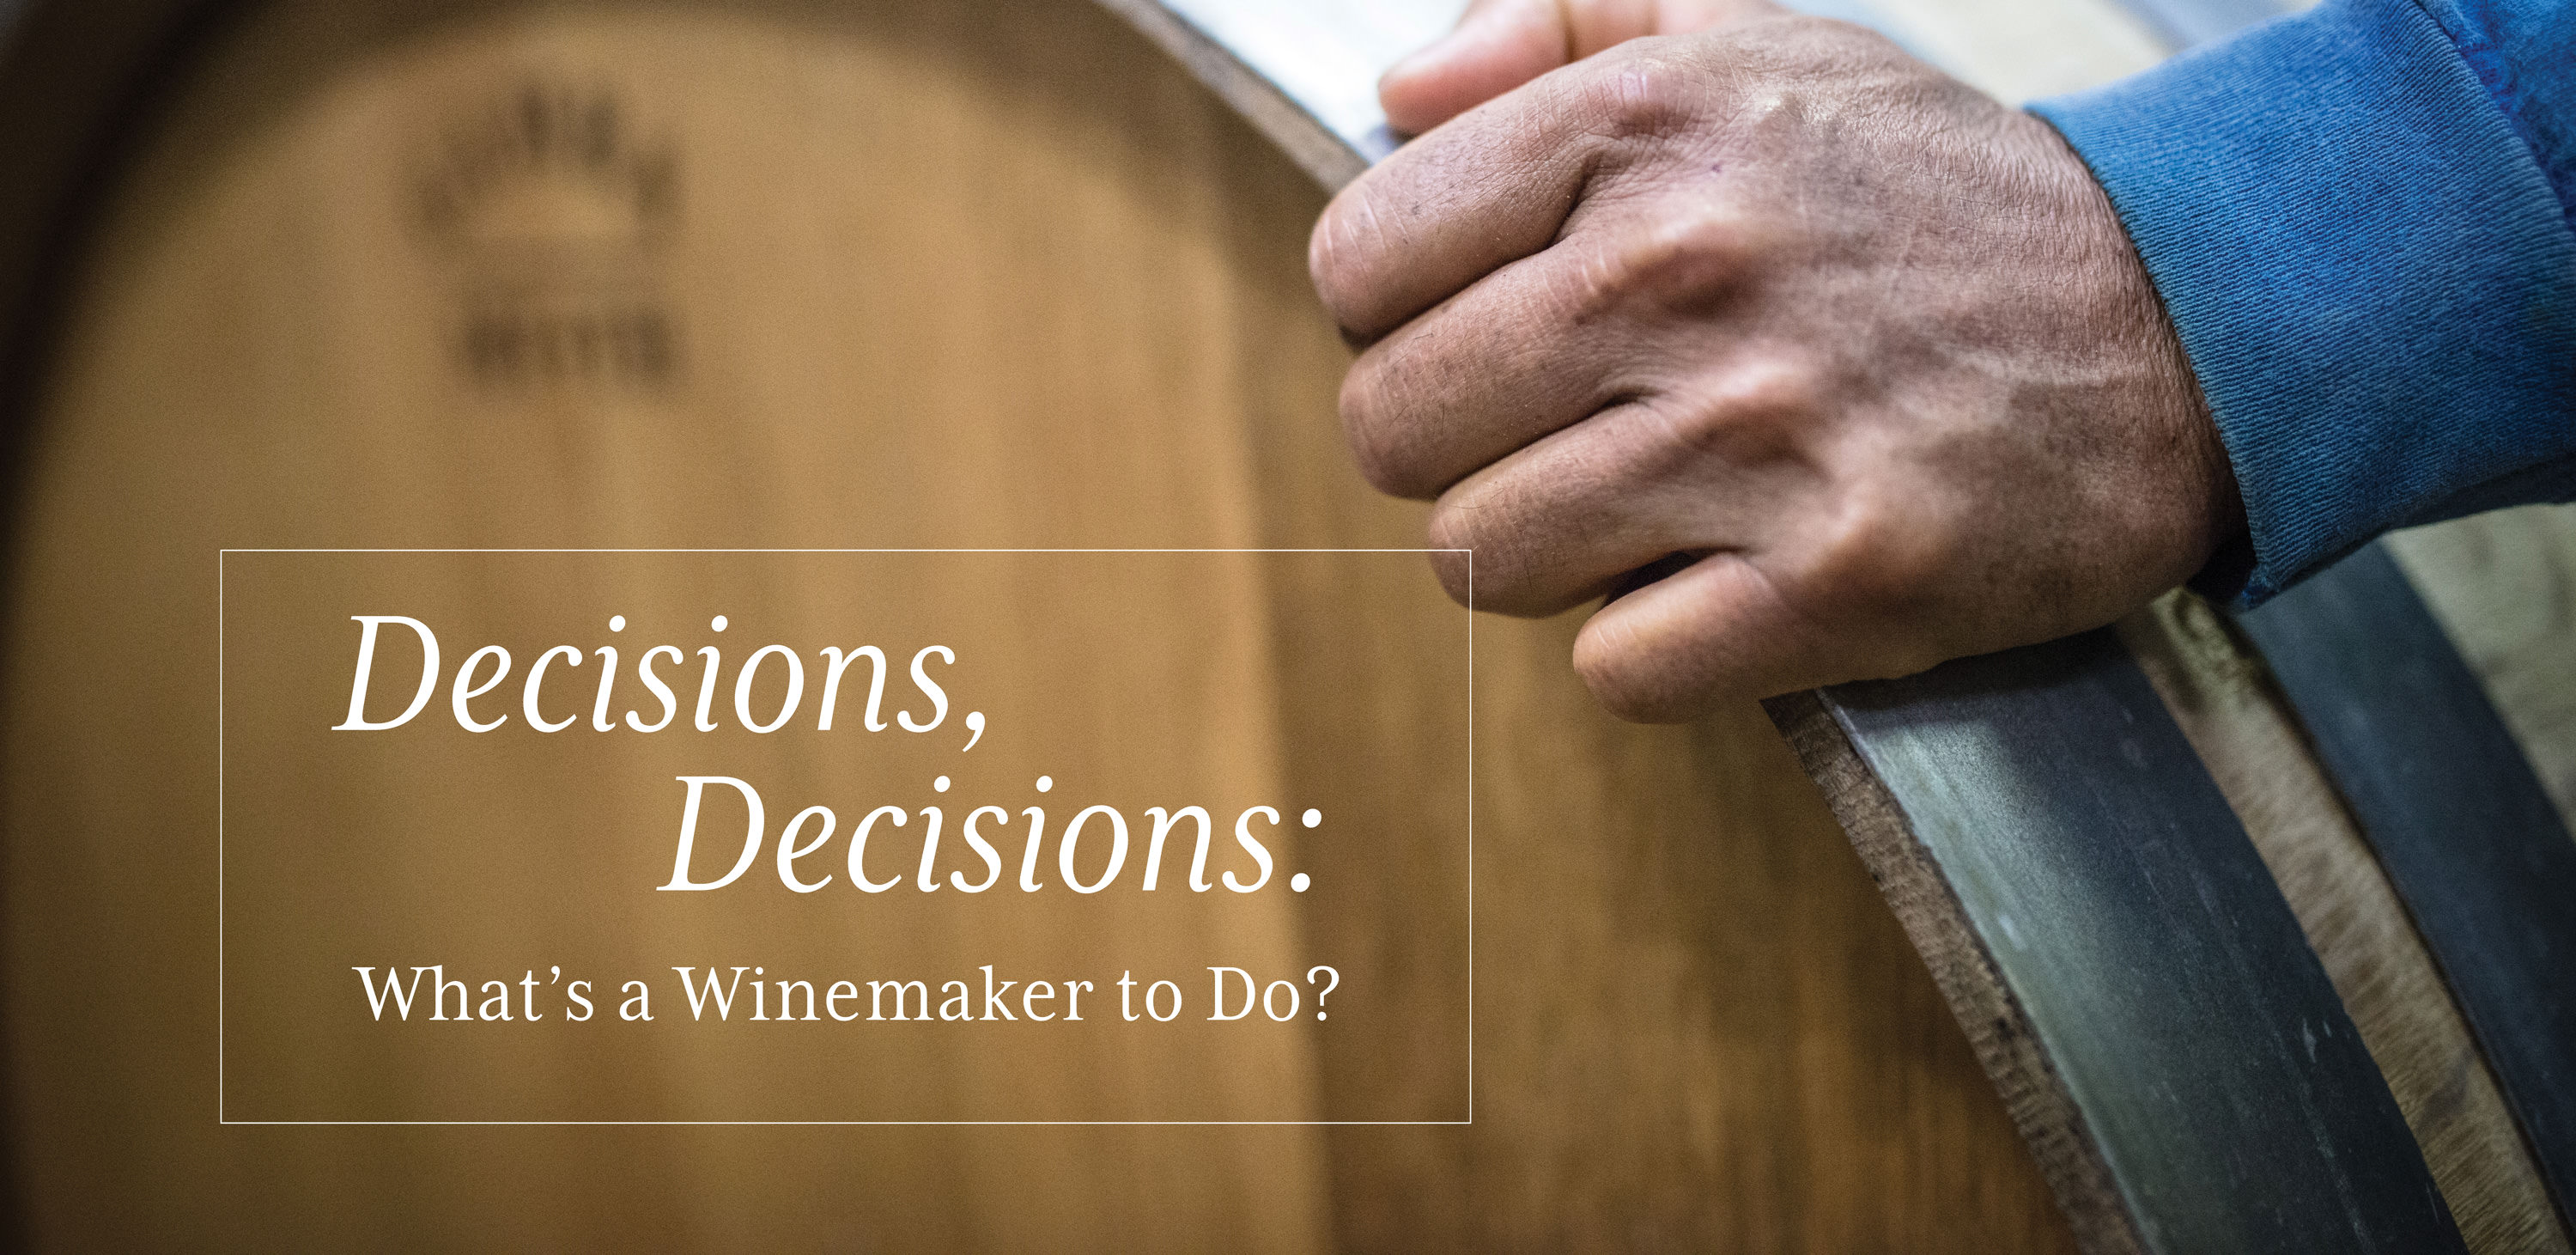 Decisions, Descisions: What's a Winemaker to Do?